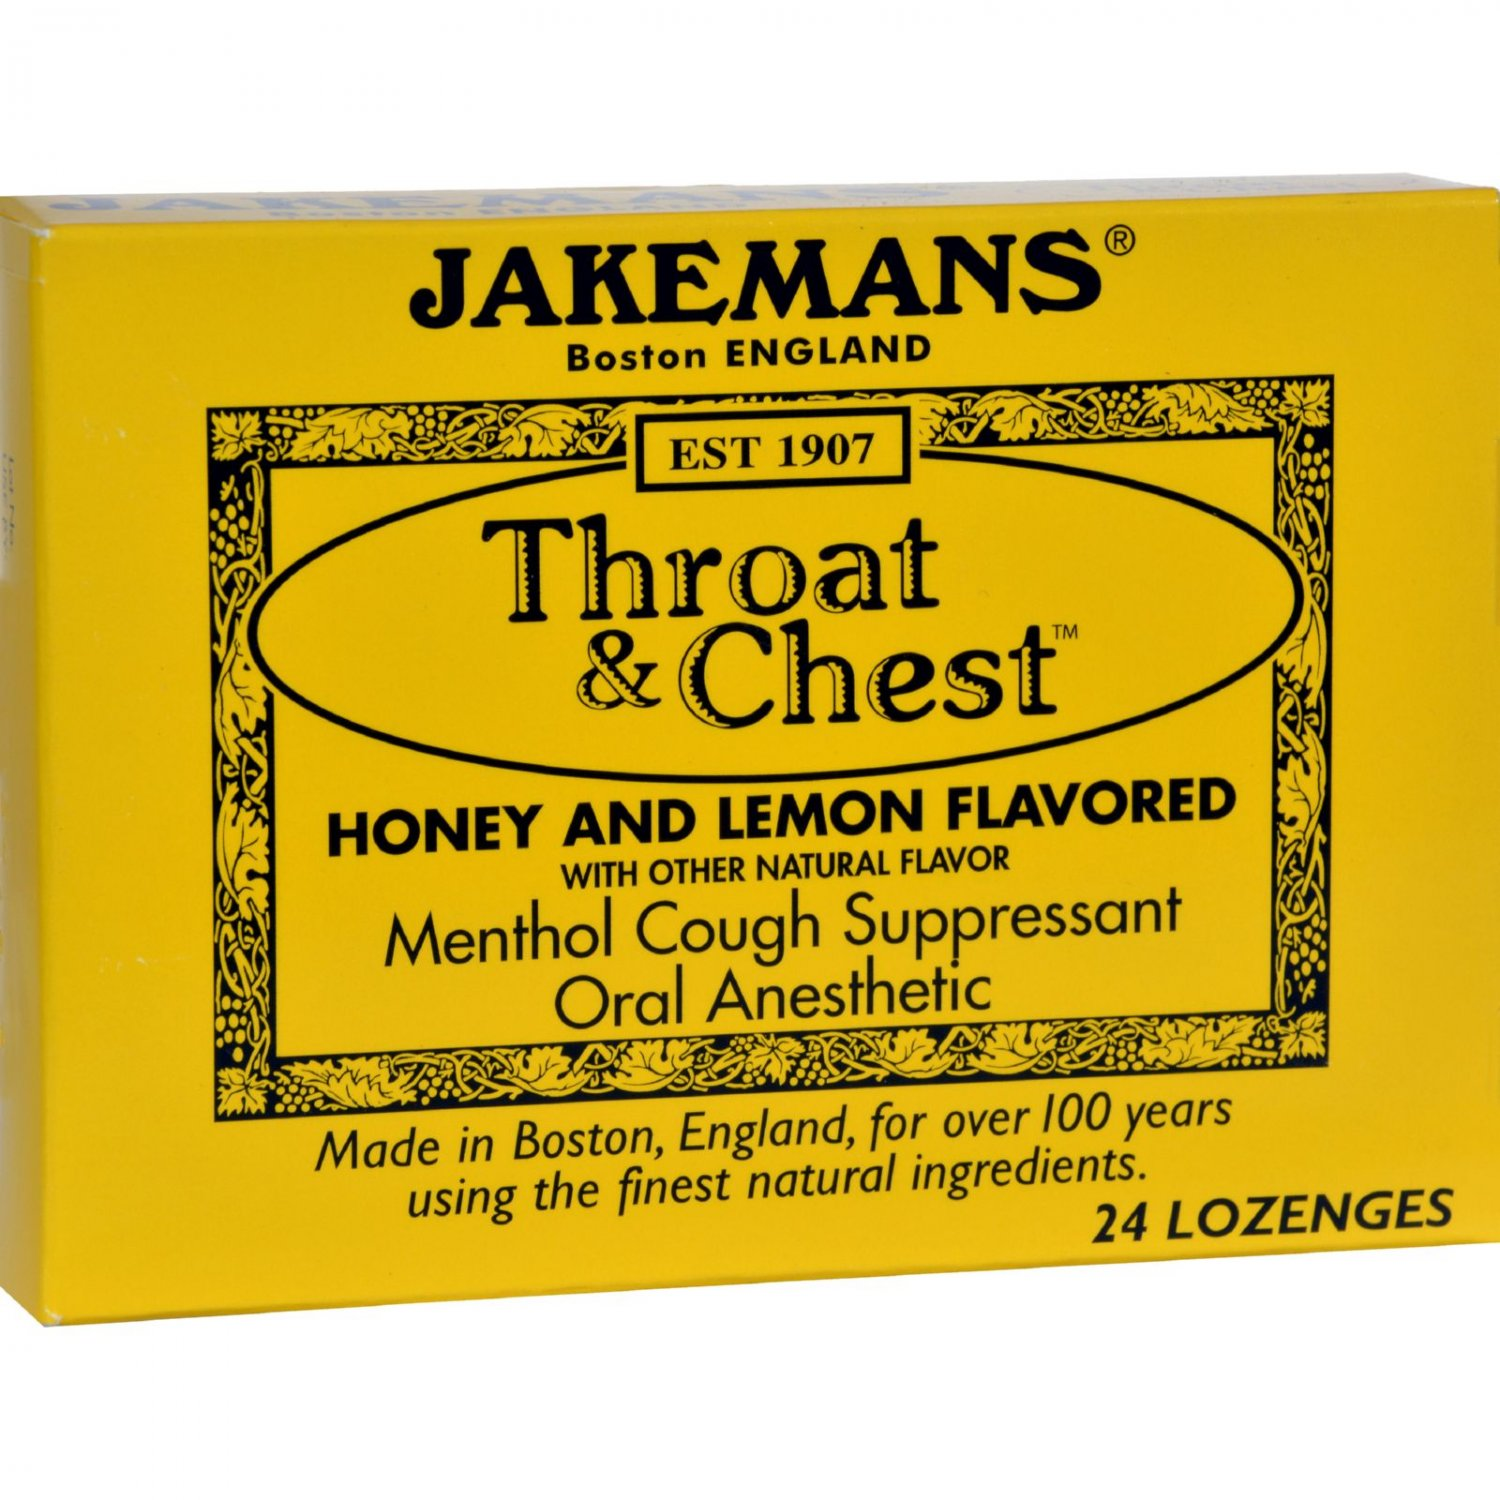 Jakemans Throat and Chest Lozenges - Honey and Lemon - 24 Pack